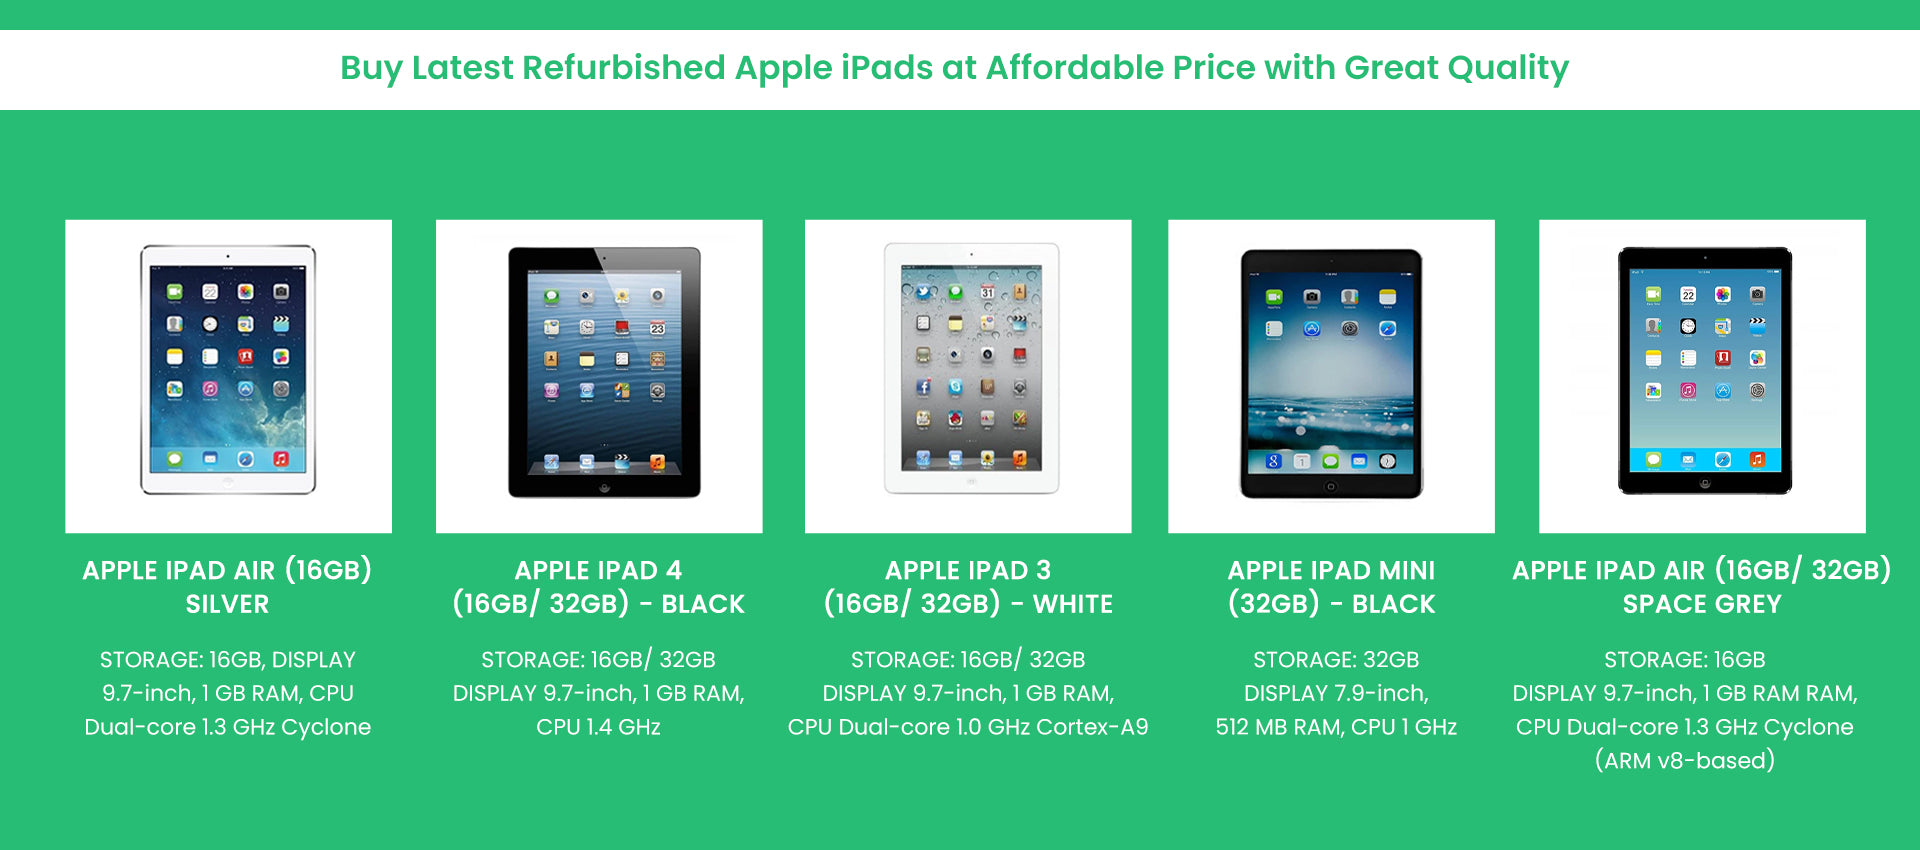 Cheap Refurbished iPads for Sale - No Place Better than Loop8